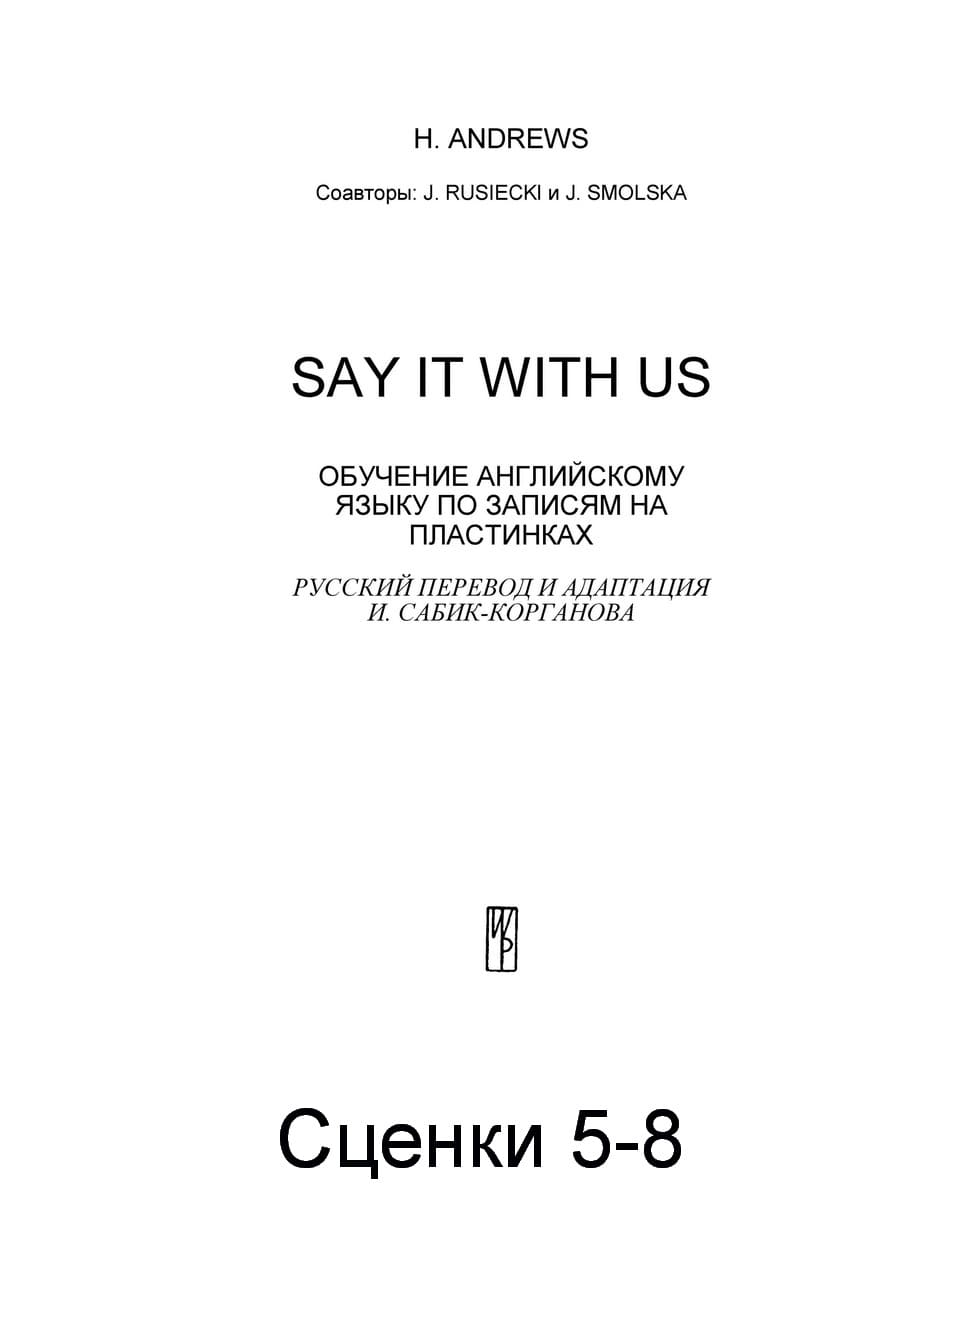 Say It With Us 05-08